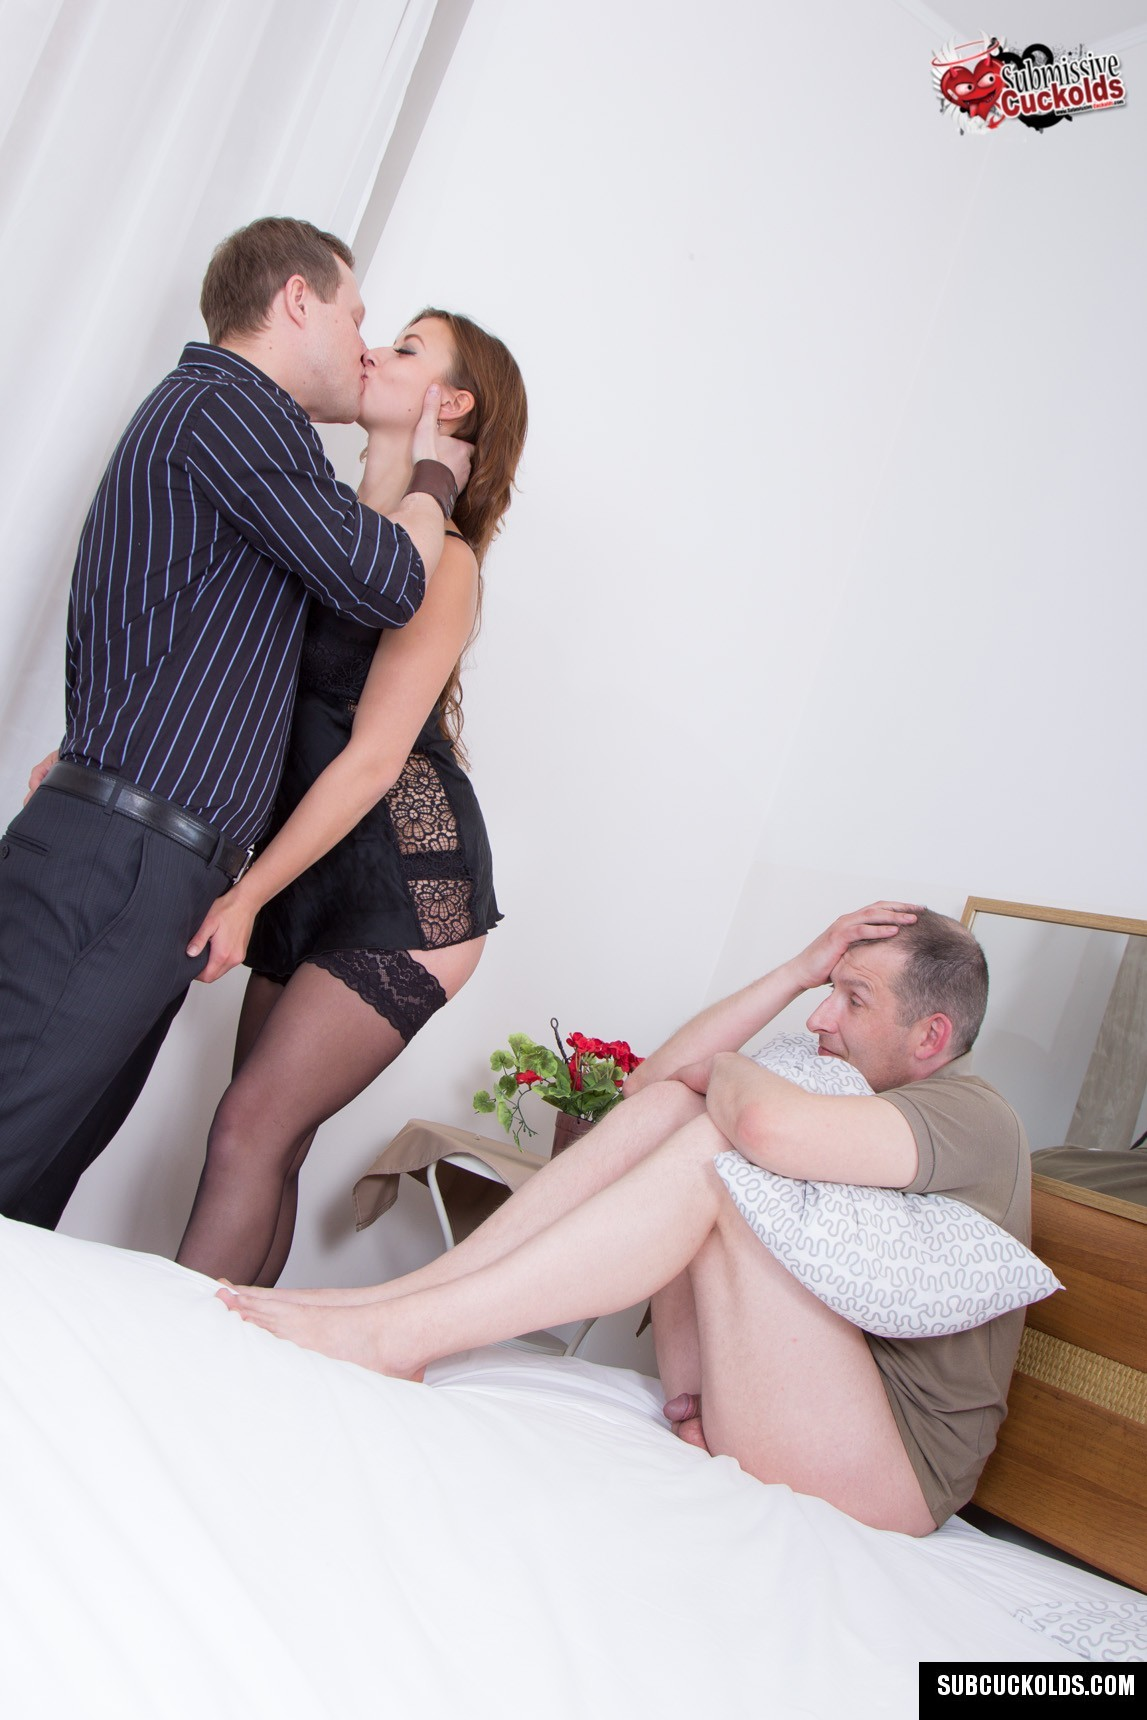 A young cuckold relationship part 1 - 2 part 5